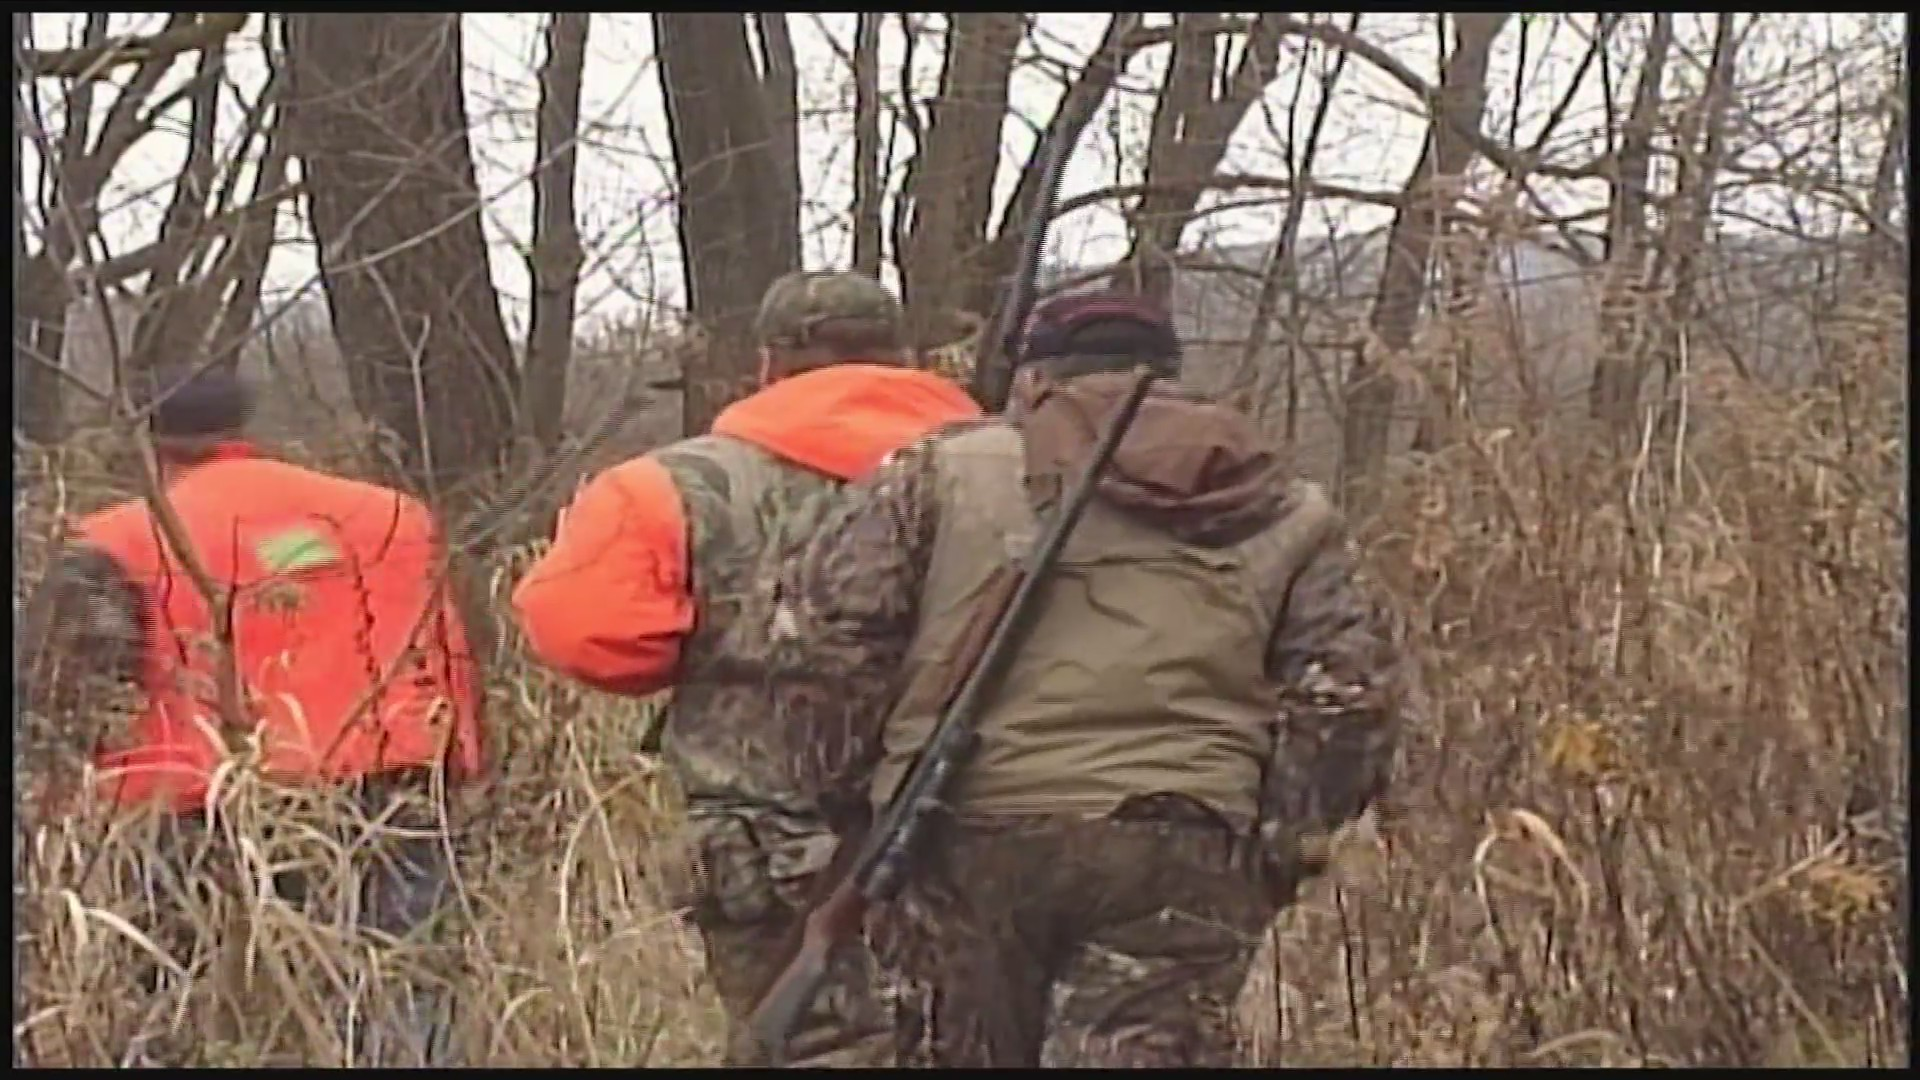 First_day_of_deer_hunting_in_Pennsylvani_0_20181126053124